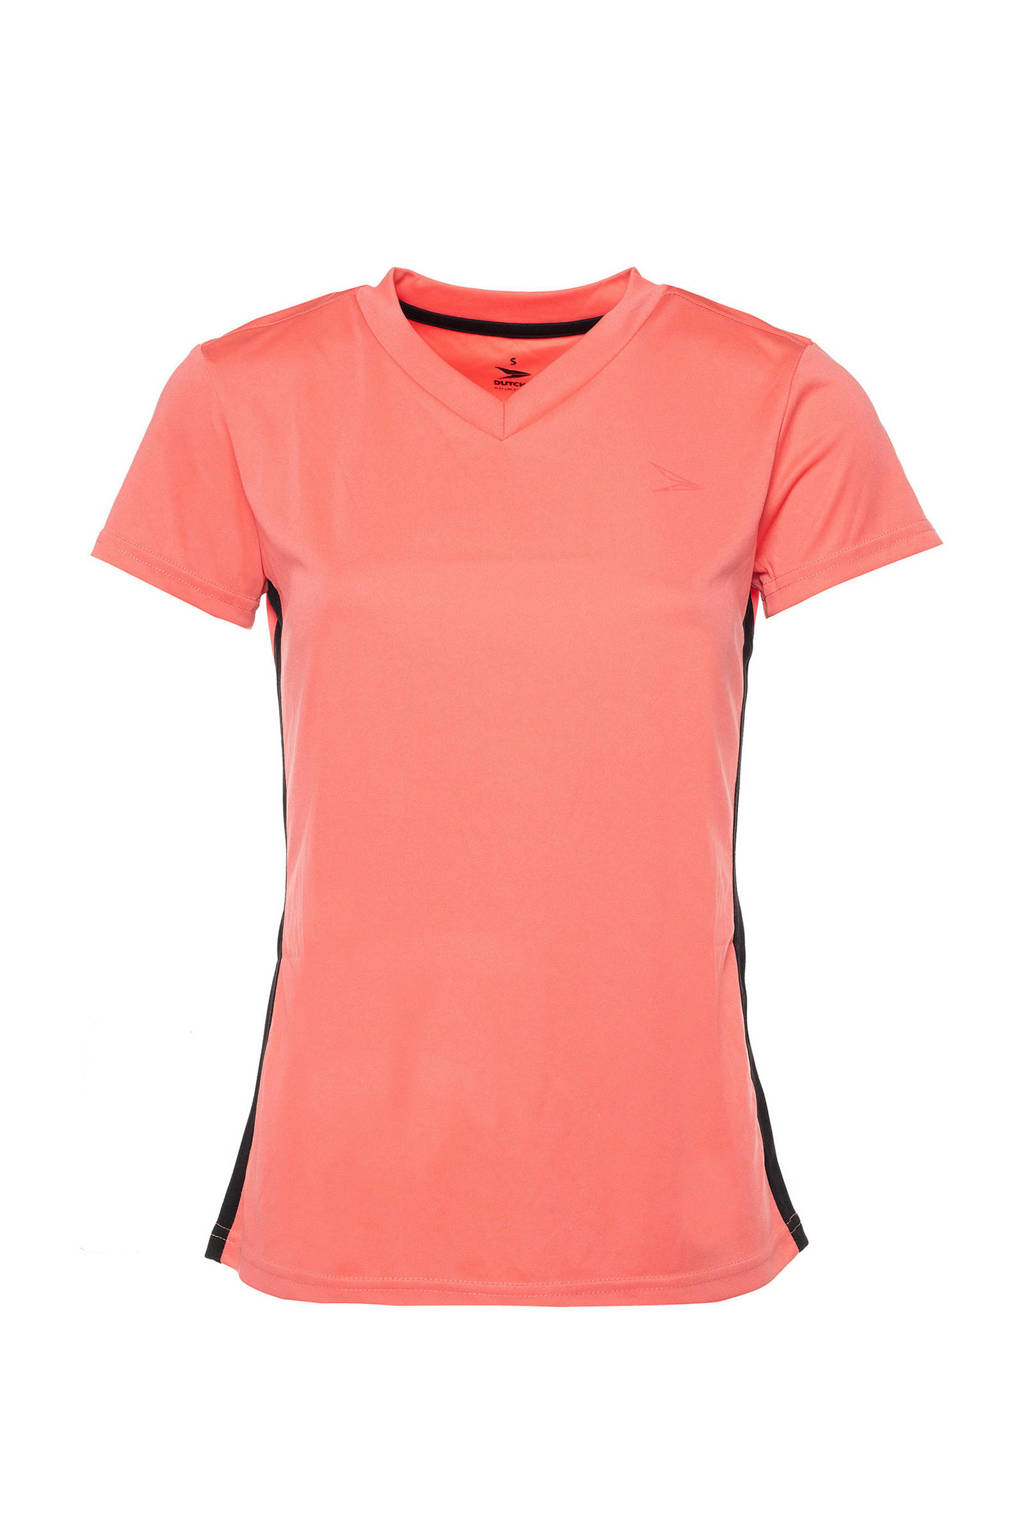 Scapino Dutchy voetbal T-shirt, Roze